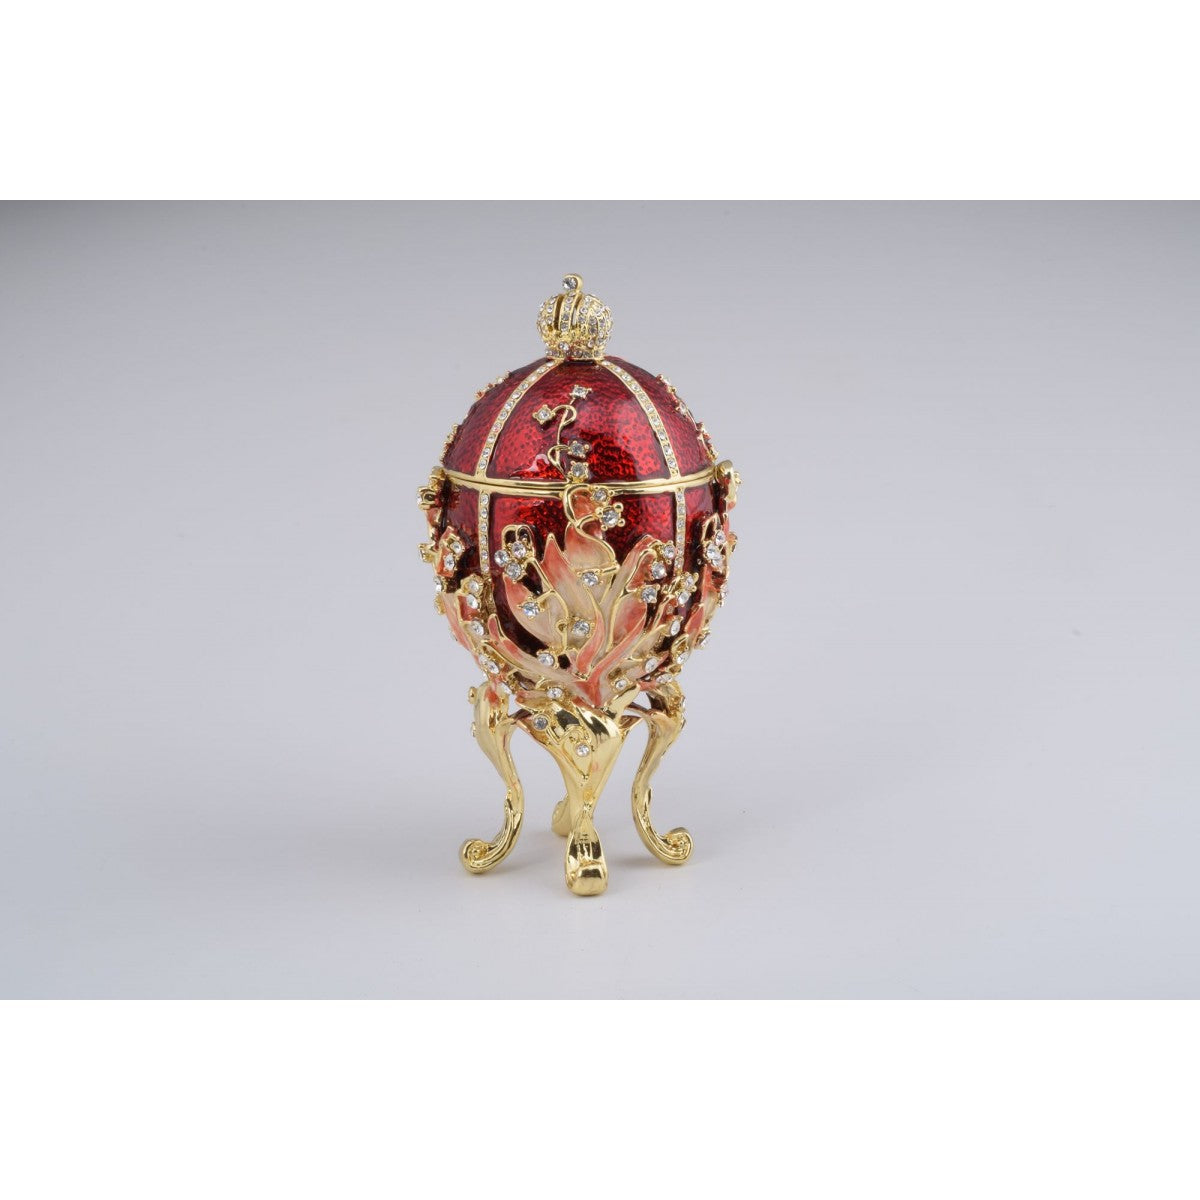 Red Faberge Style Egg Trinket Box by Keren Kopal